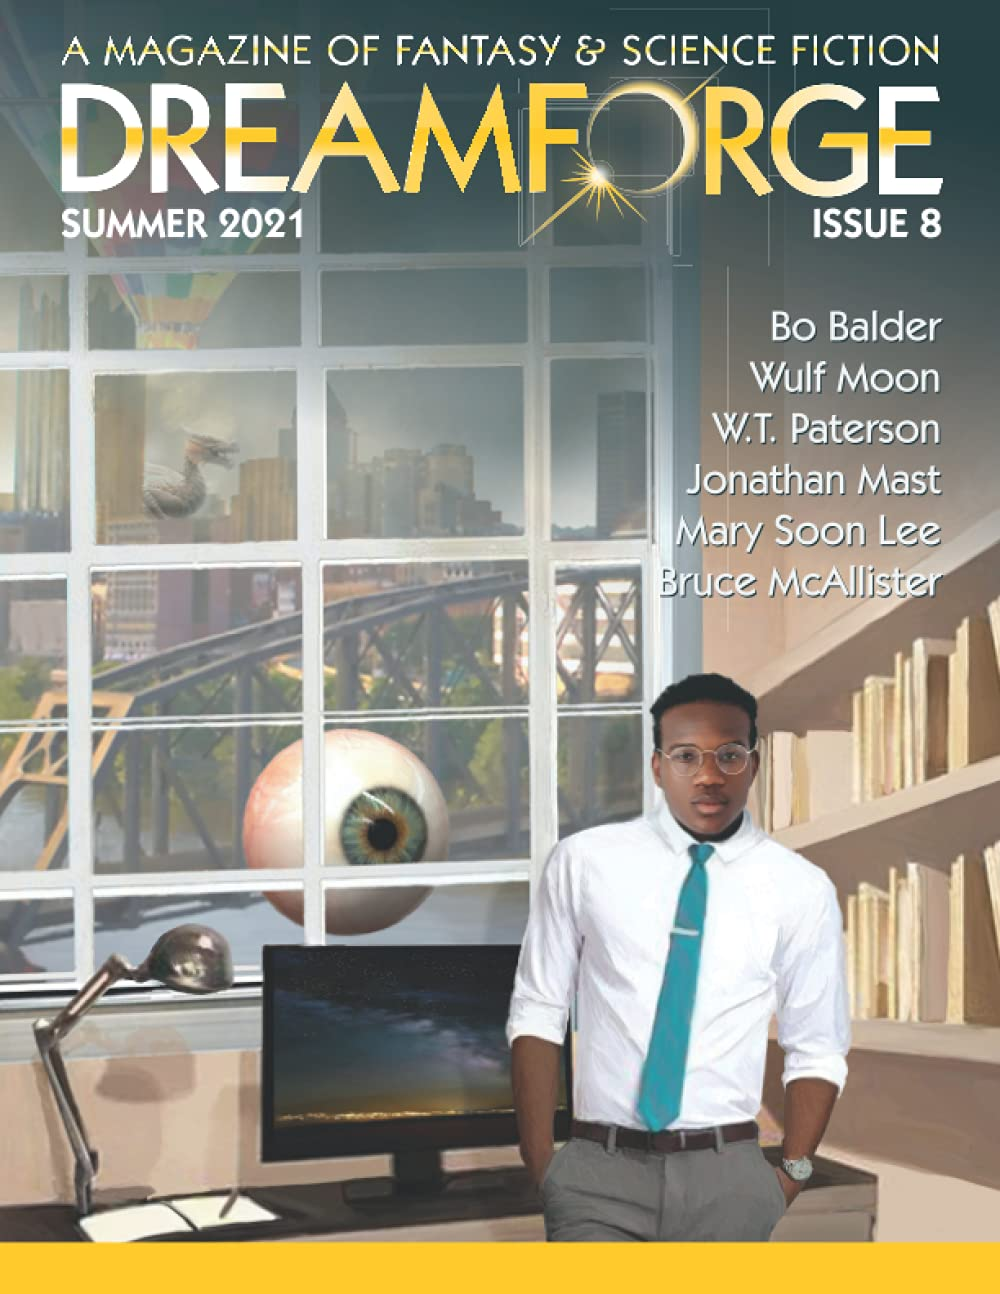 DreamForge Issue 8